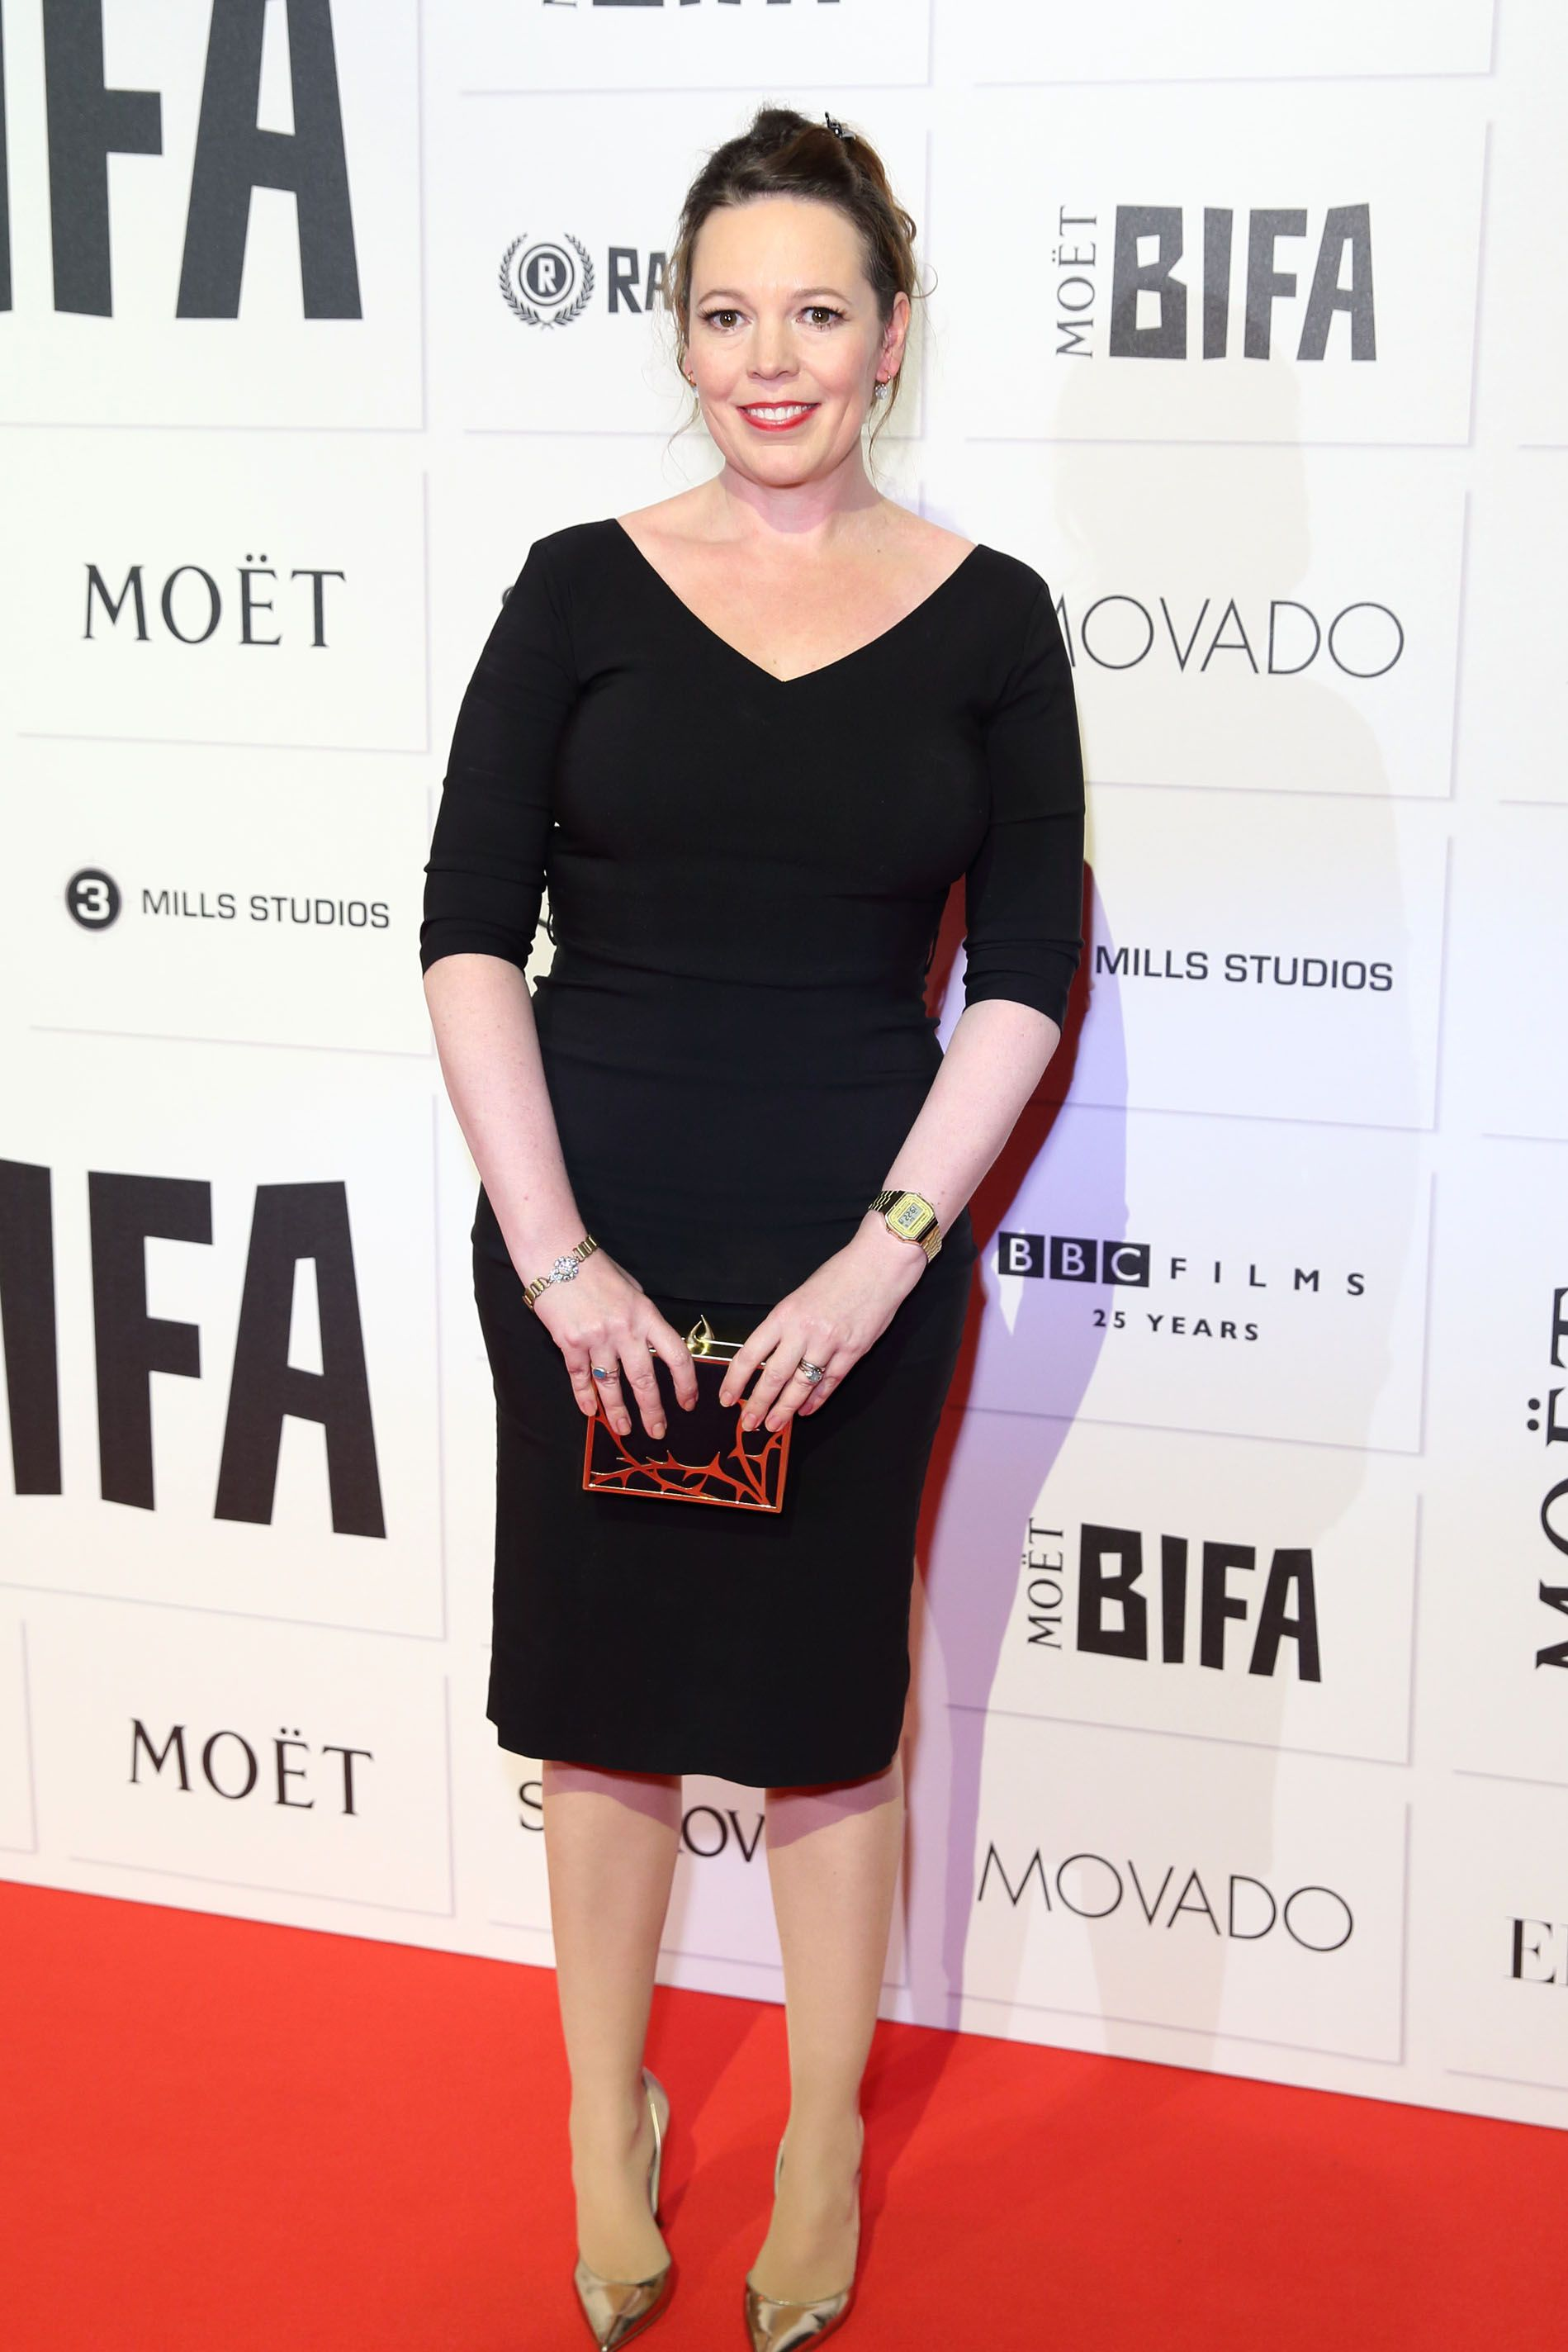 Olivia paired a simple black dress with gold pumps and a unique black-and-red clutch to attend the Moet British Independent Film Awards.